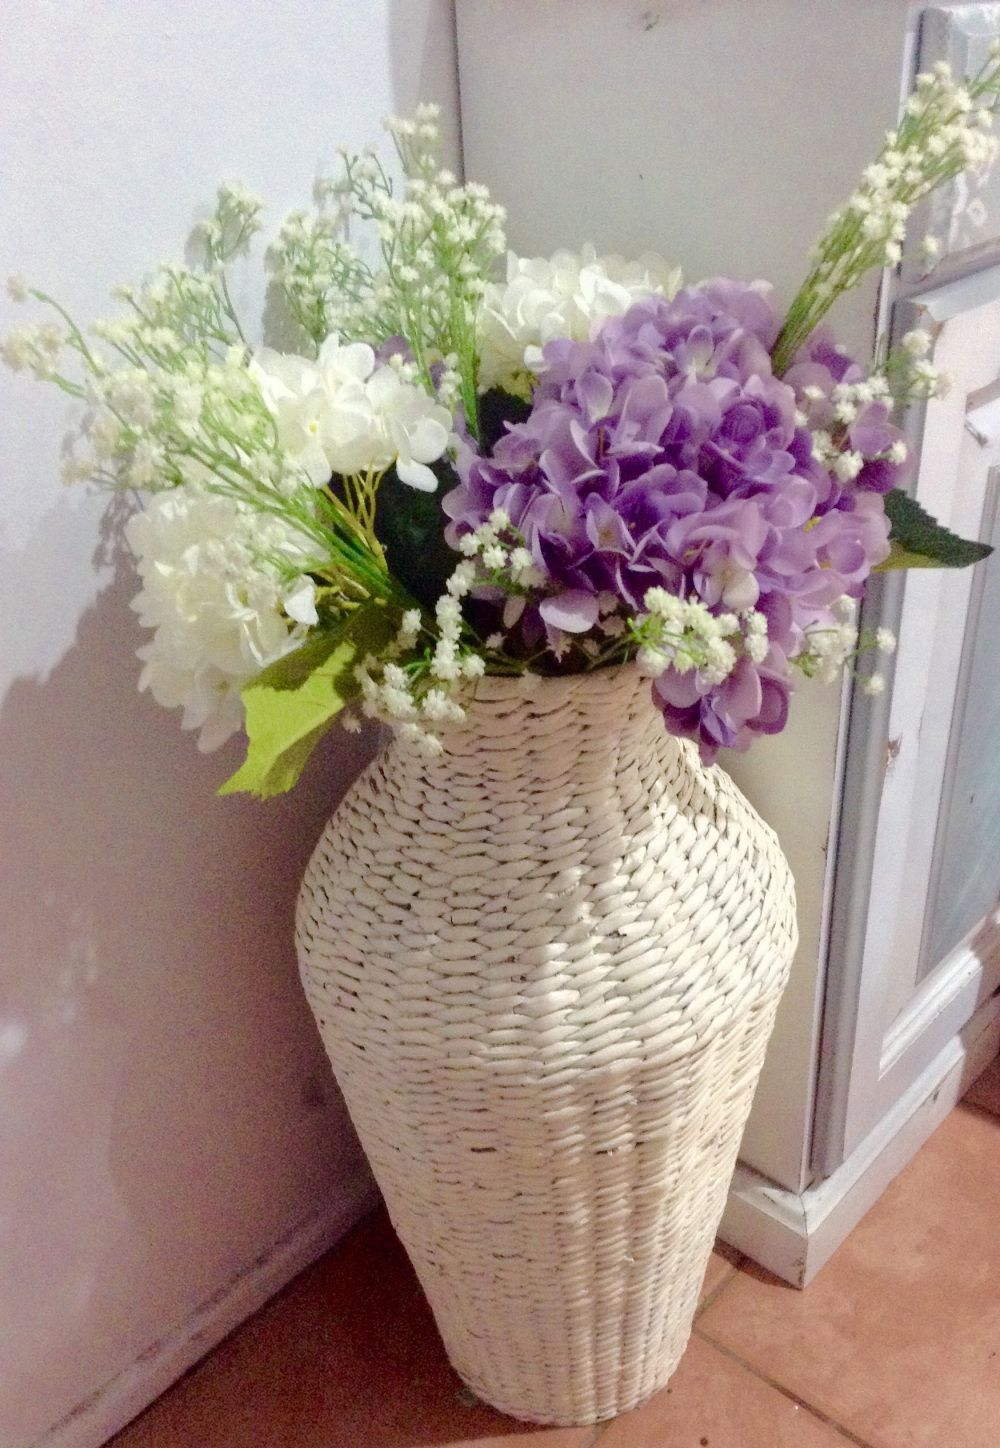 Where to buy silk flowers with free shipping for under 5 group where to buy silk flowers with free shipping for under 5 mightylinksfo